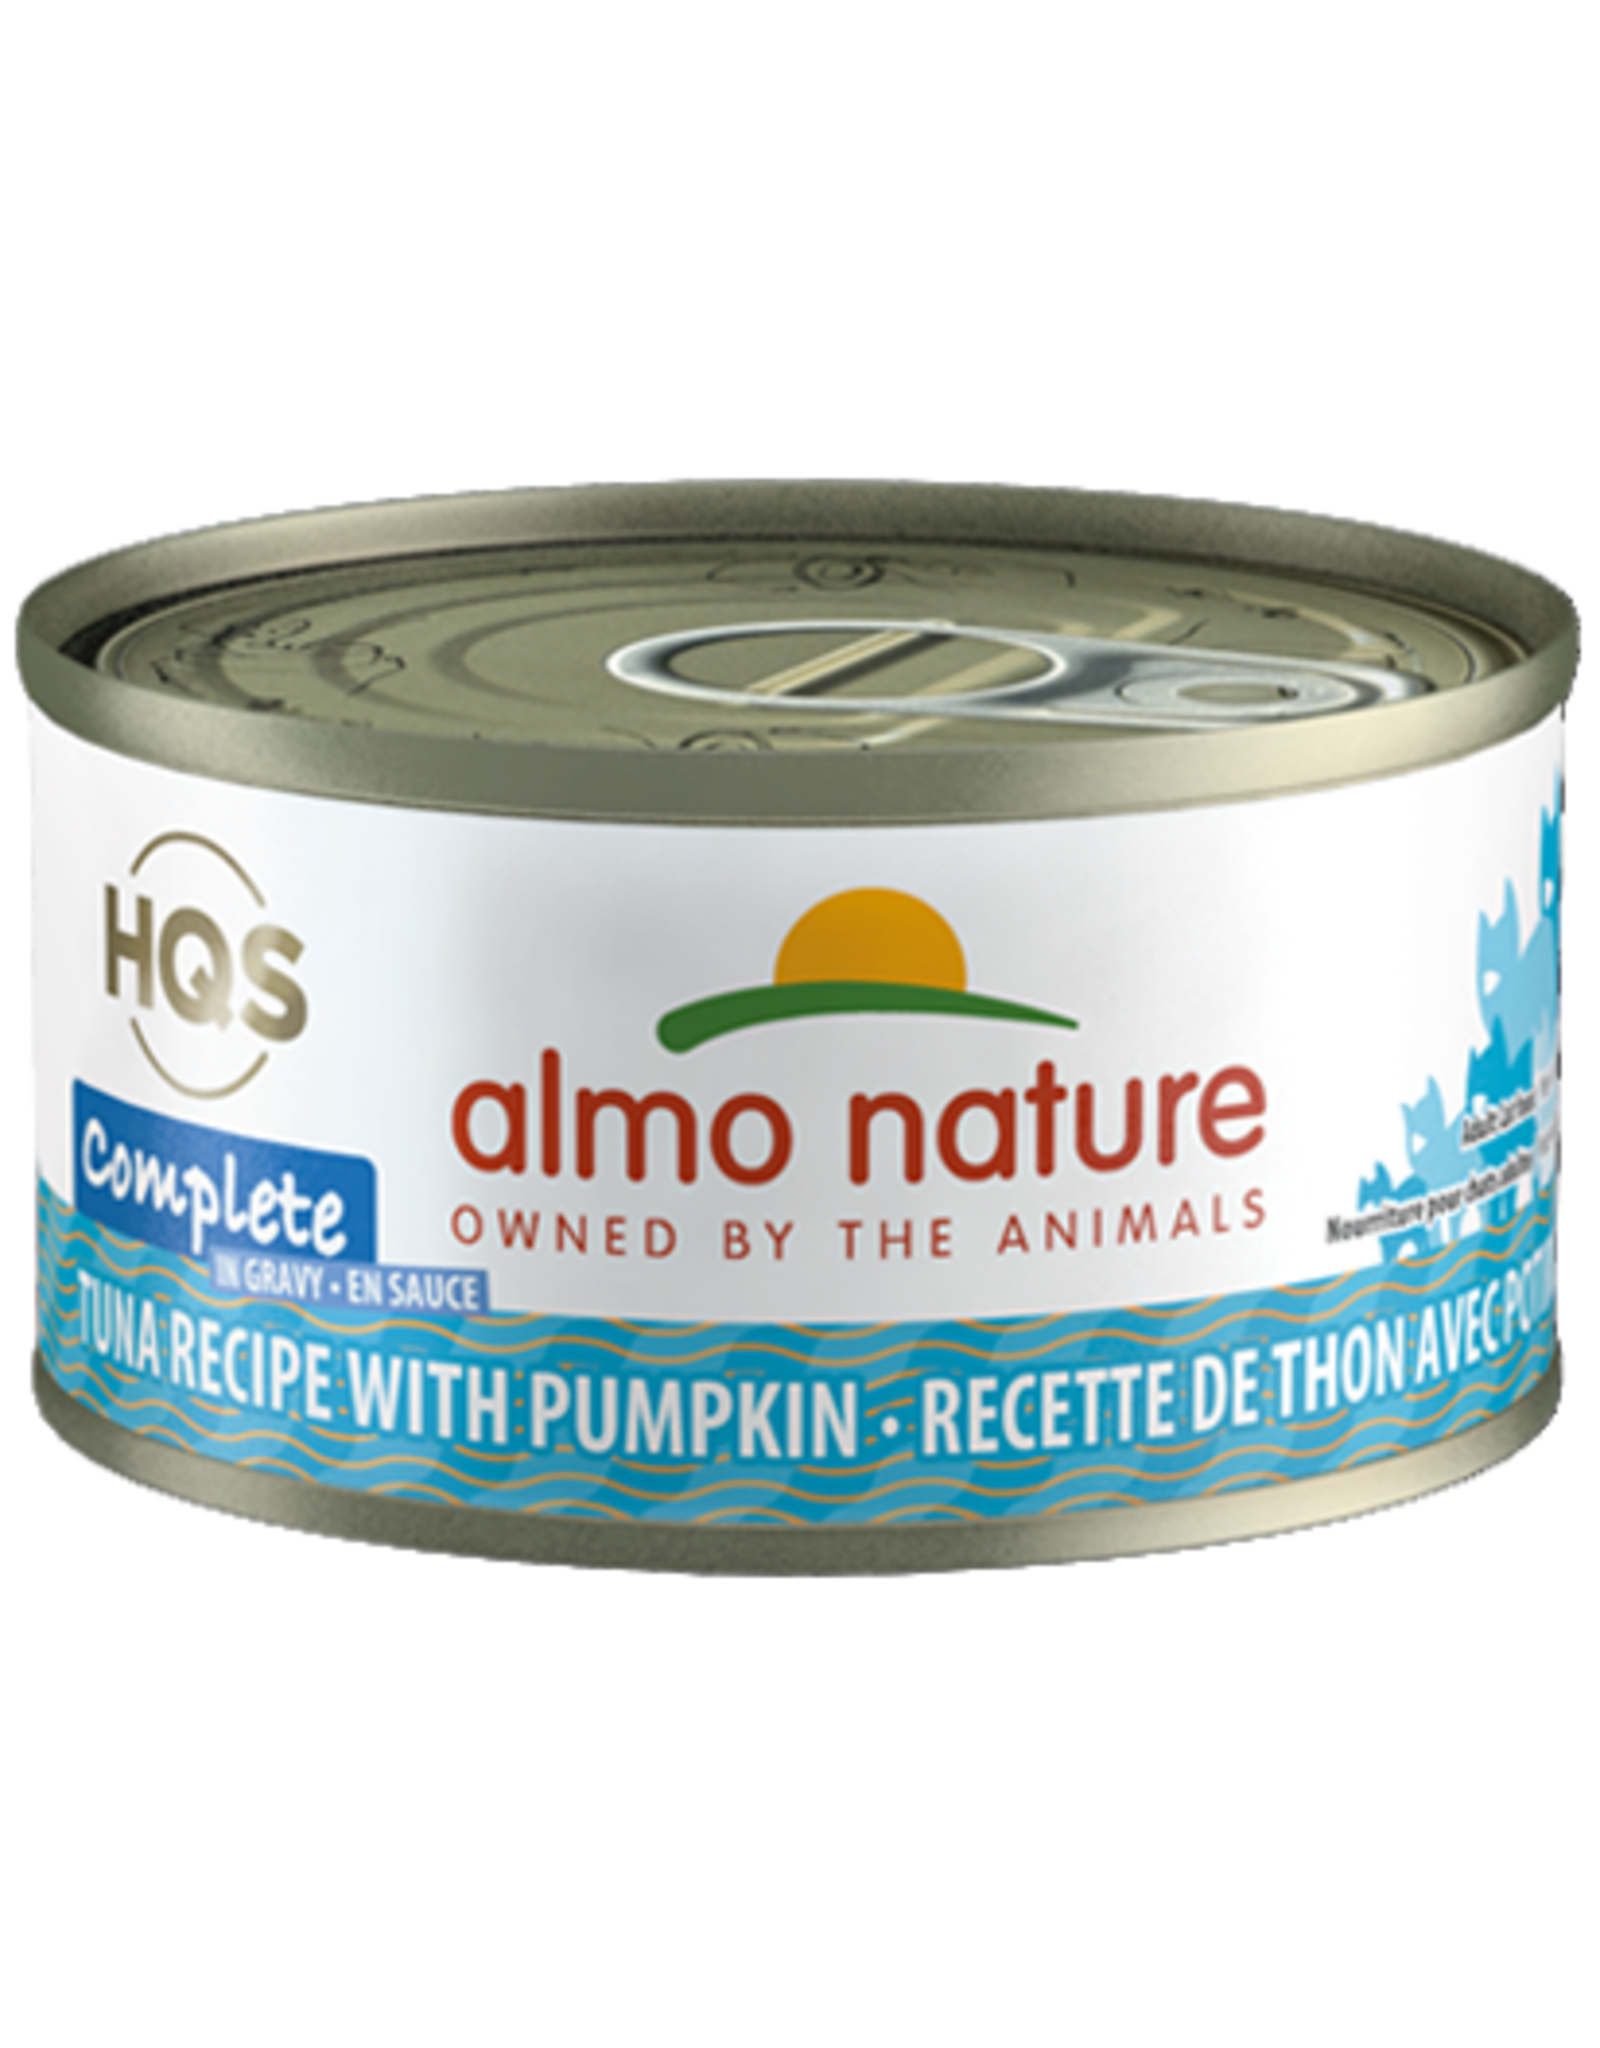 Almo Nature Almo Nature HQS Complete Wet Cat Food Tuna Recipe with Pumpkin in Gravy 2.47oz Can Grain Free